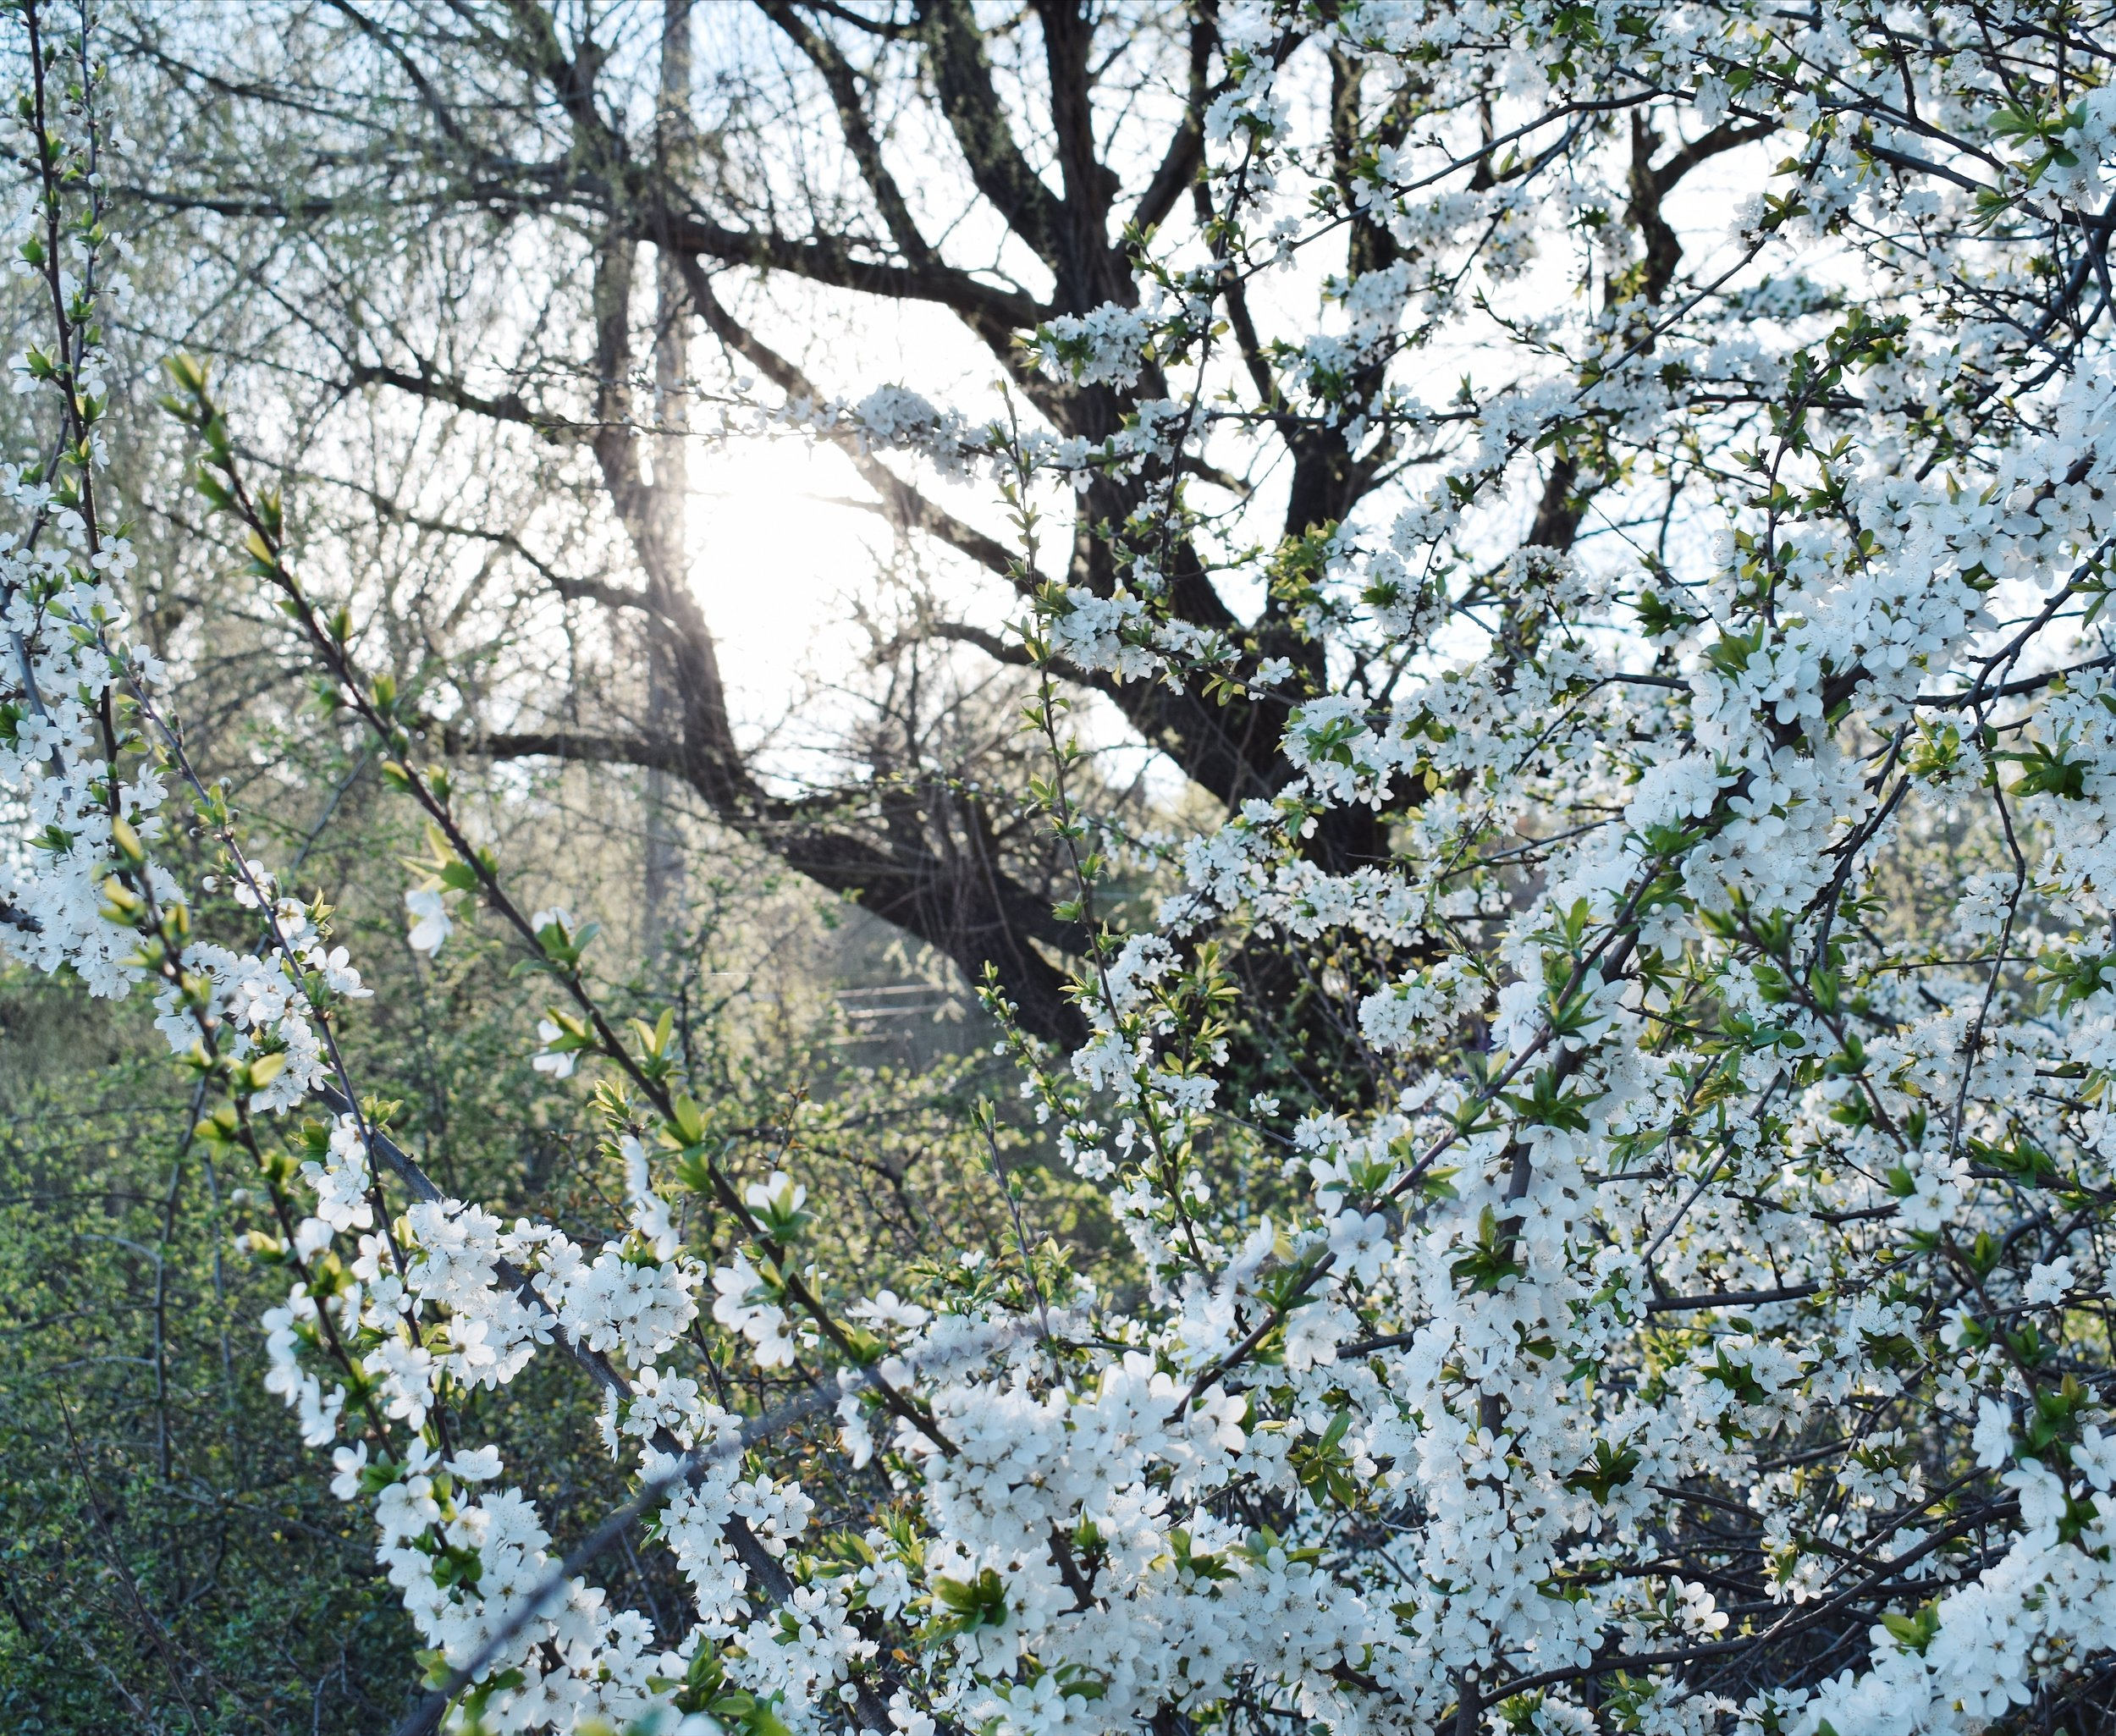 Tree filled with white flowers in the sun rise